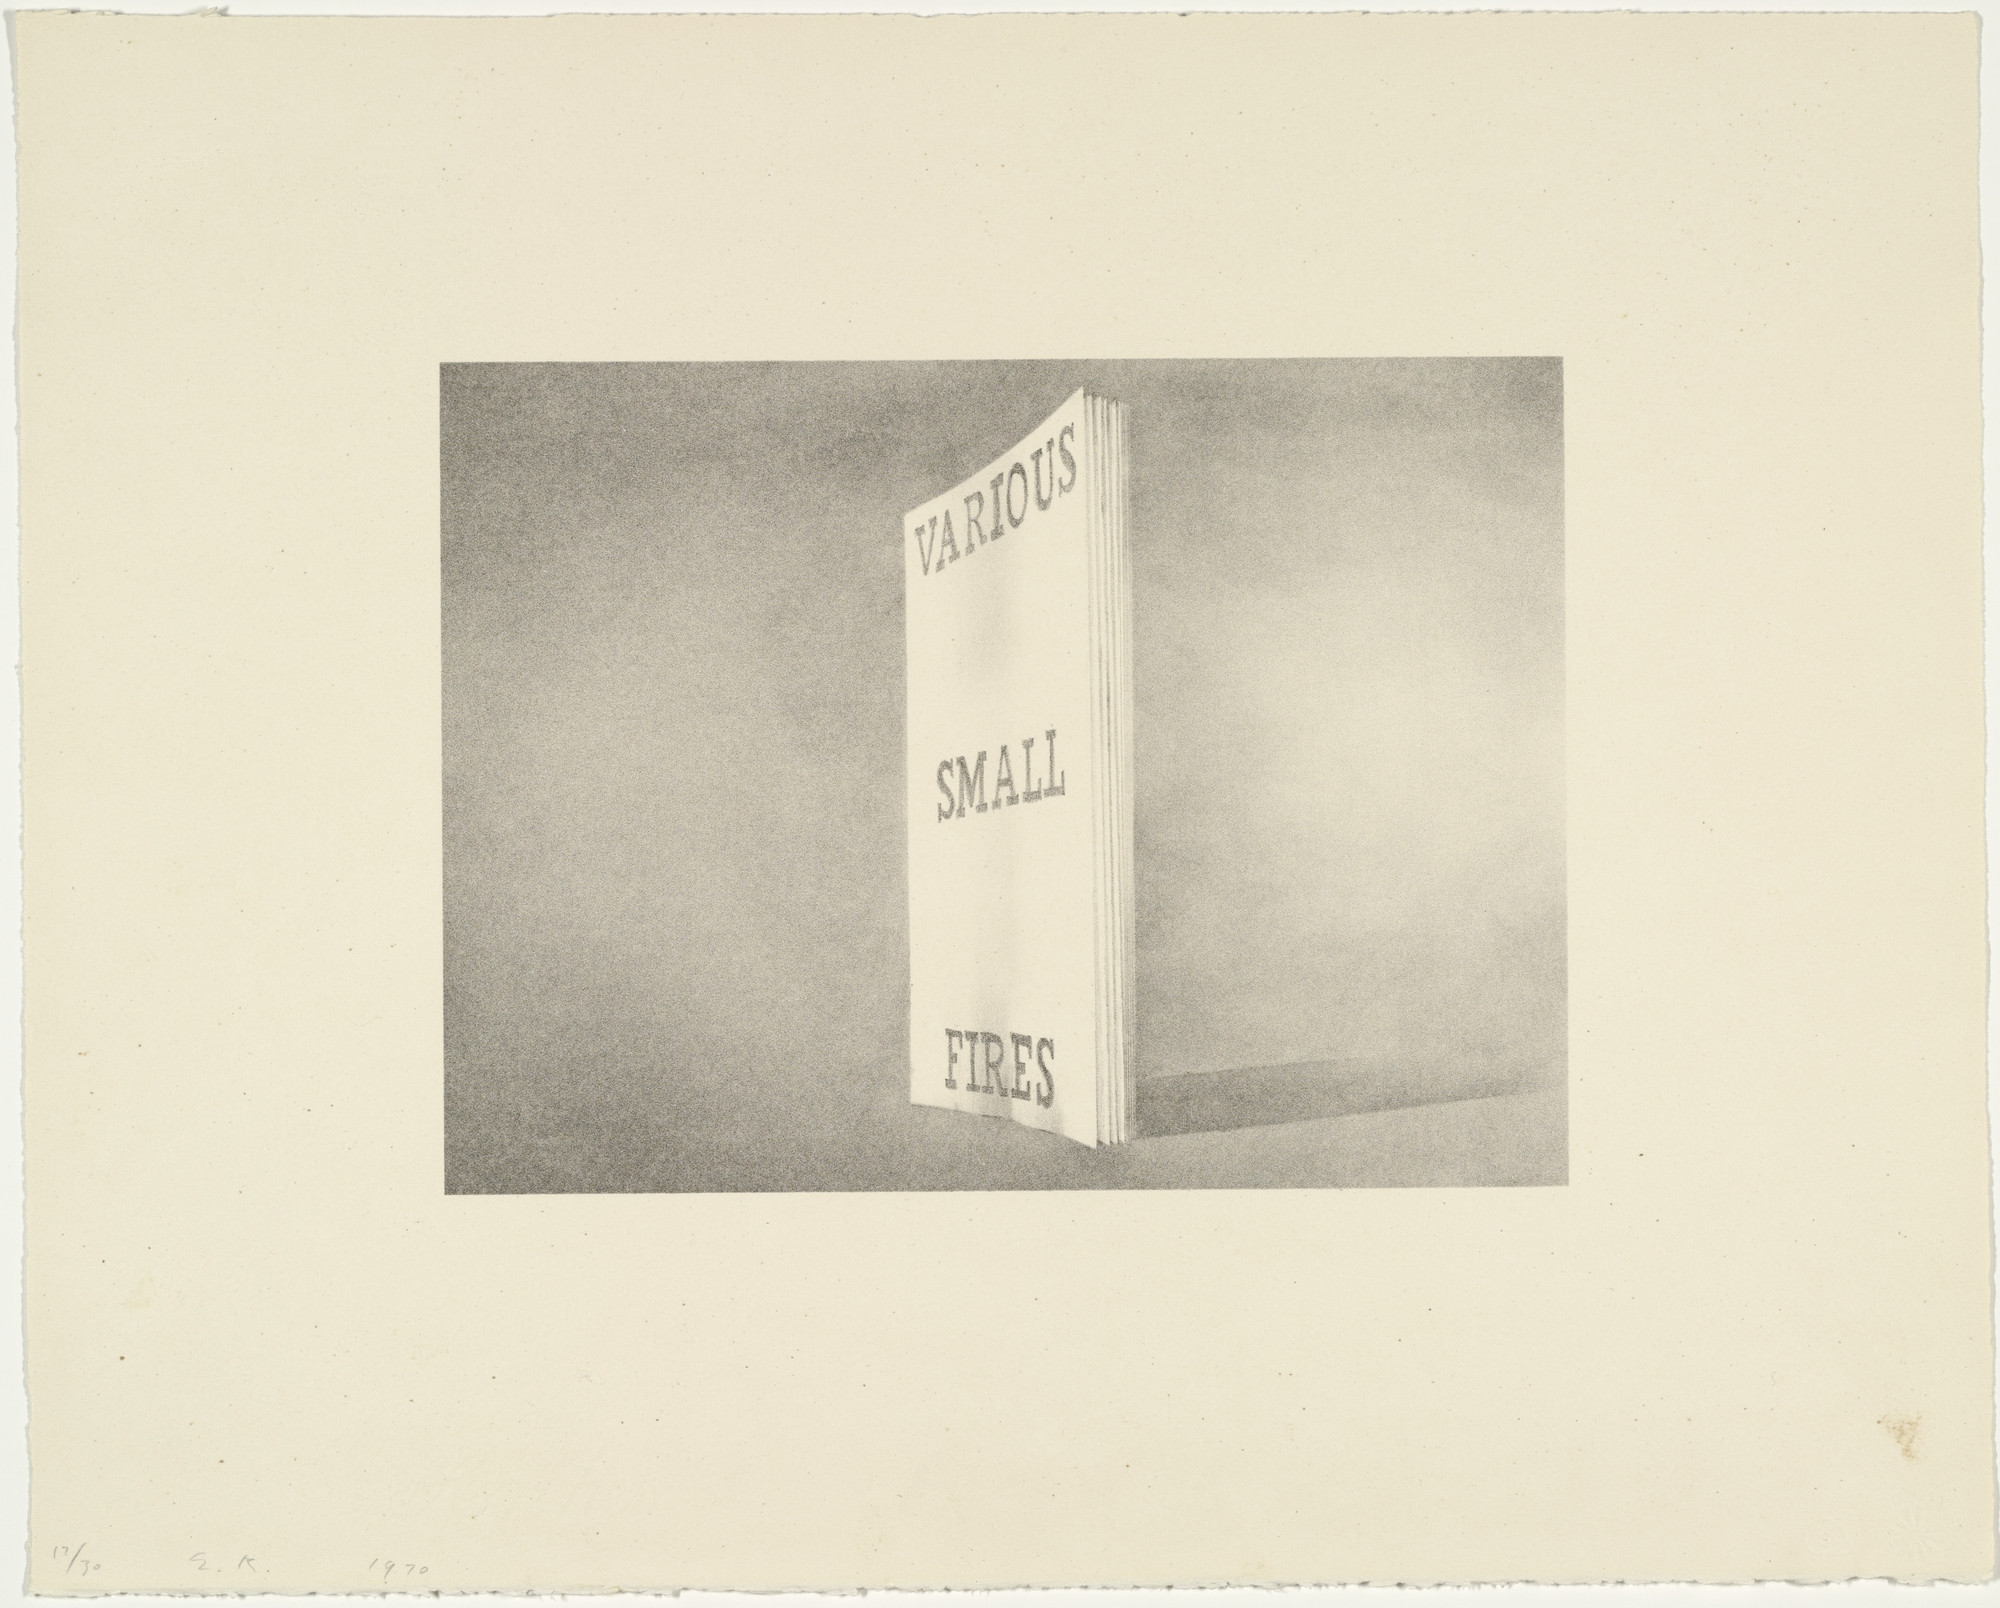 Edward Ruscha. Various Small Fires from Book Covers. 1970